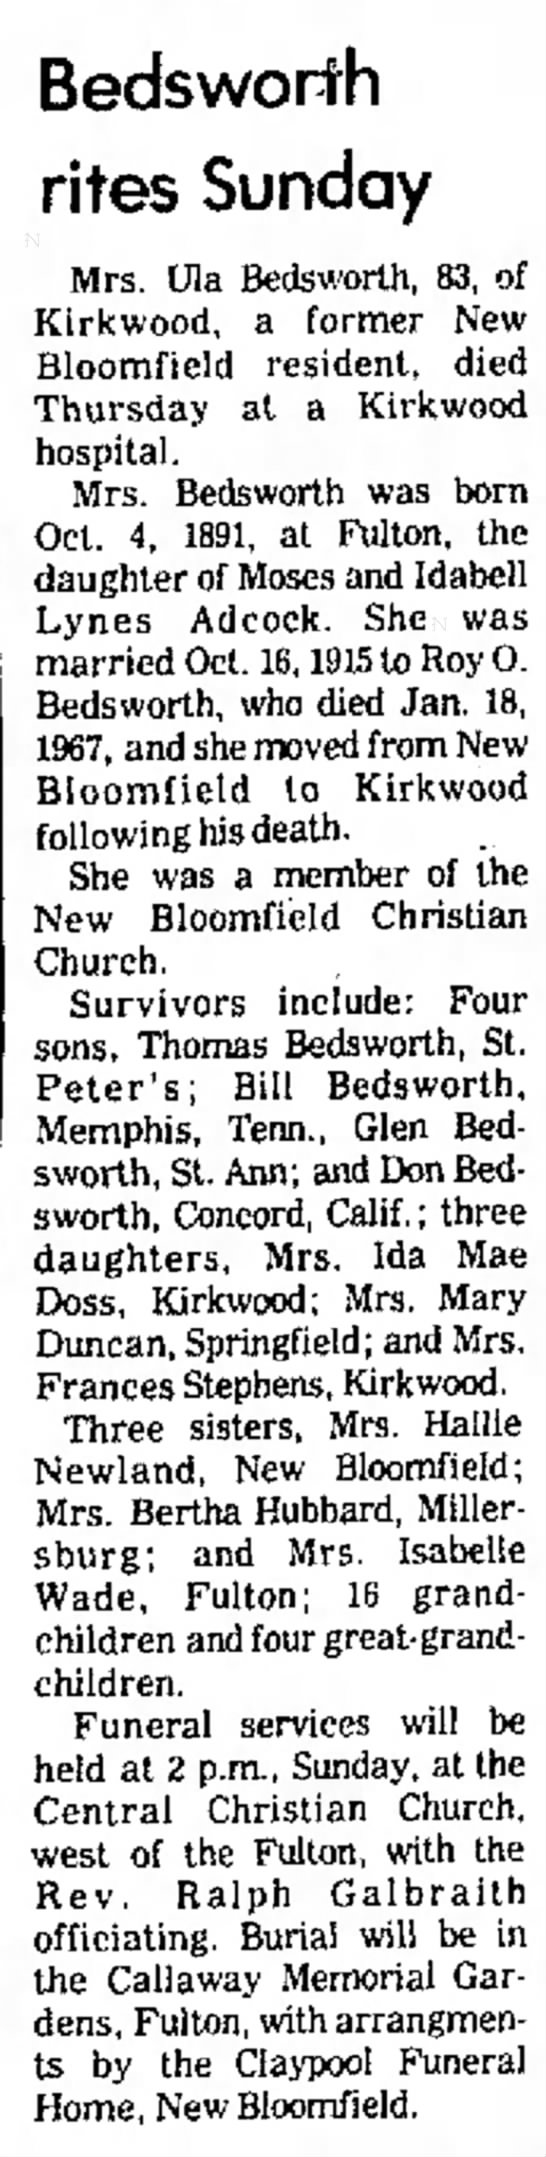 Ula (Adcock) Bedsworth newspaper obituary